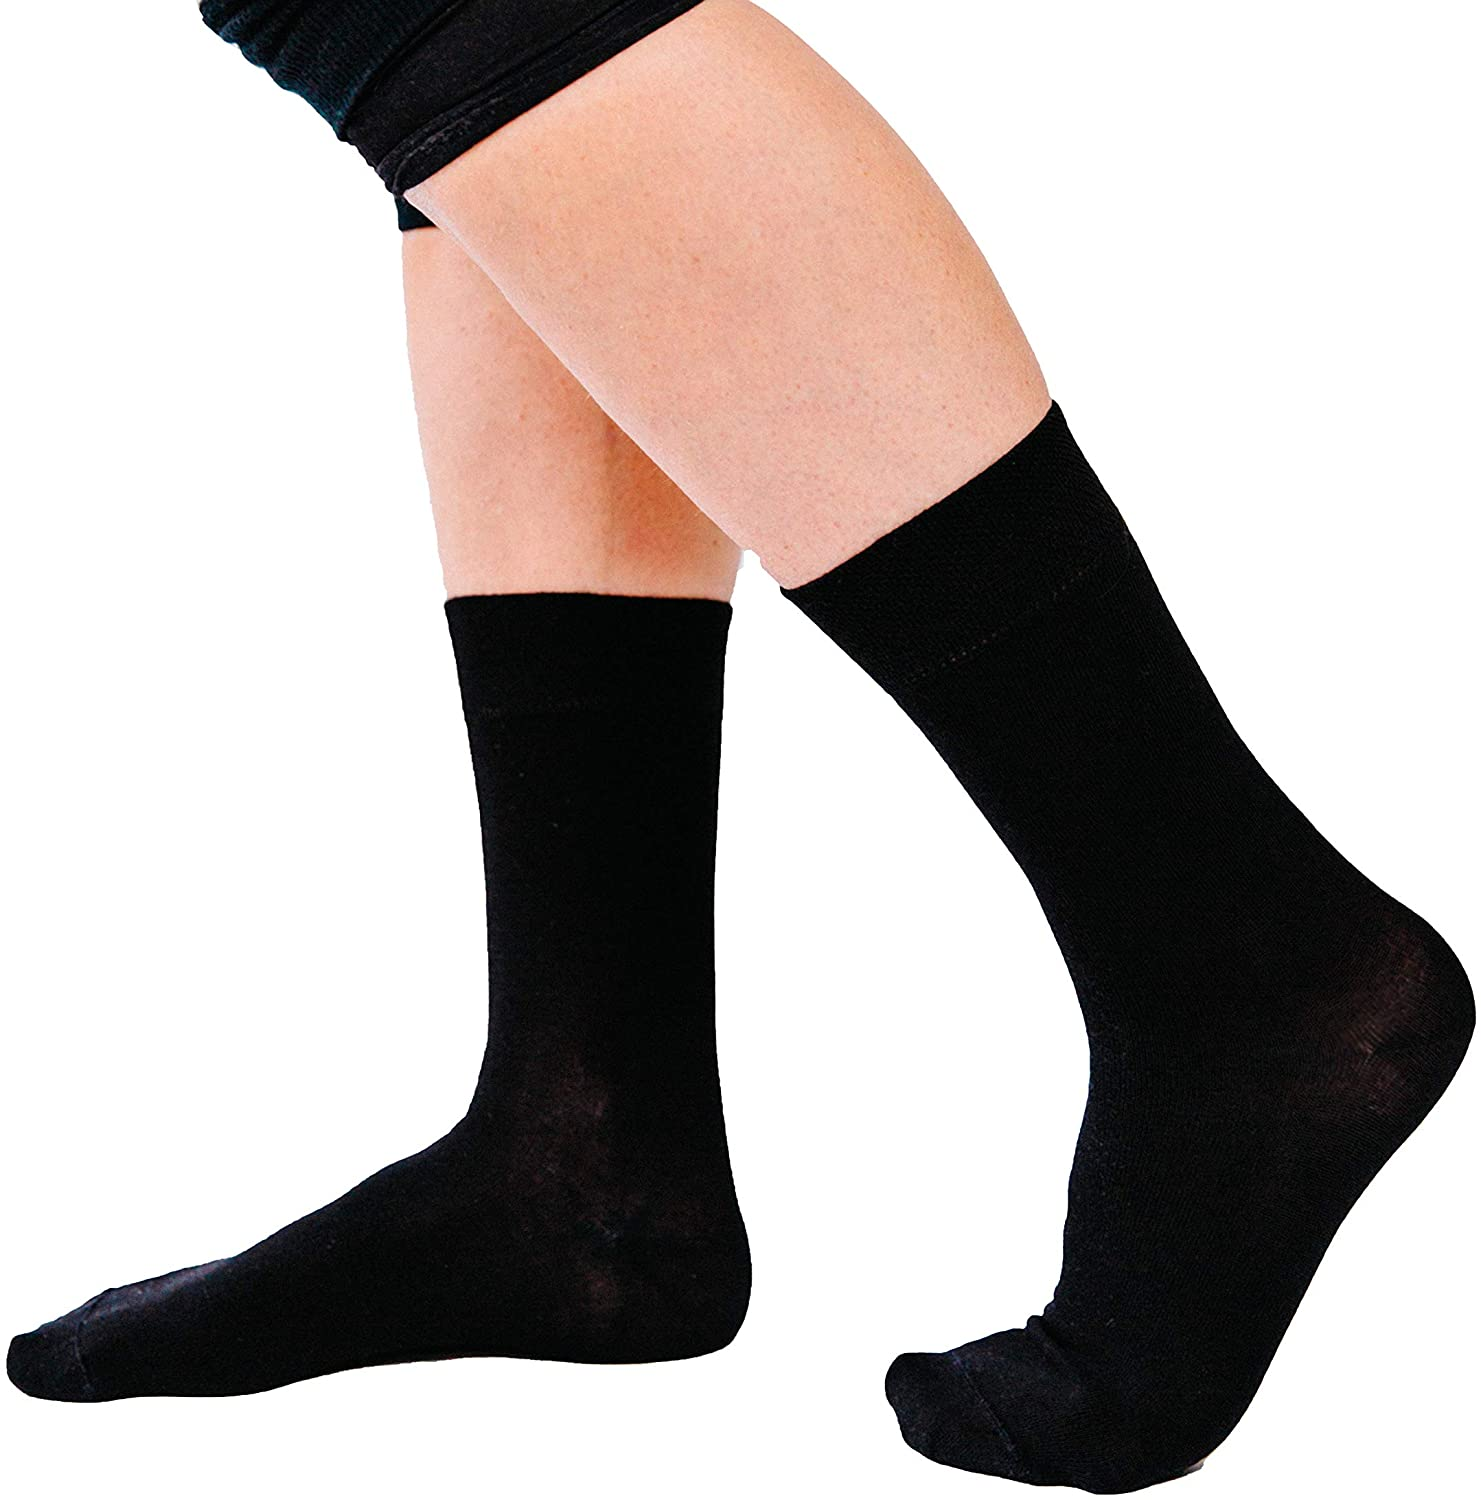 YoRo Naturals, RemedyWear Soft Moisturizing Eczema Socks for Adults, Inflammation Relief with Tencel and Zinc (Adult S, Black)